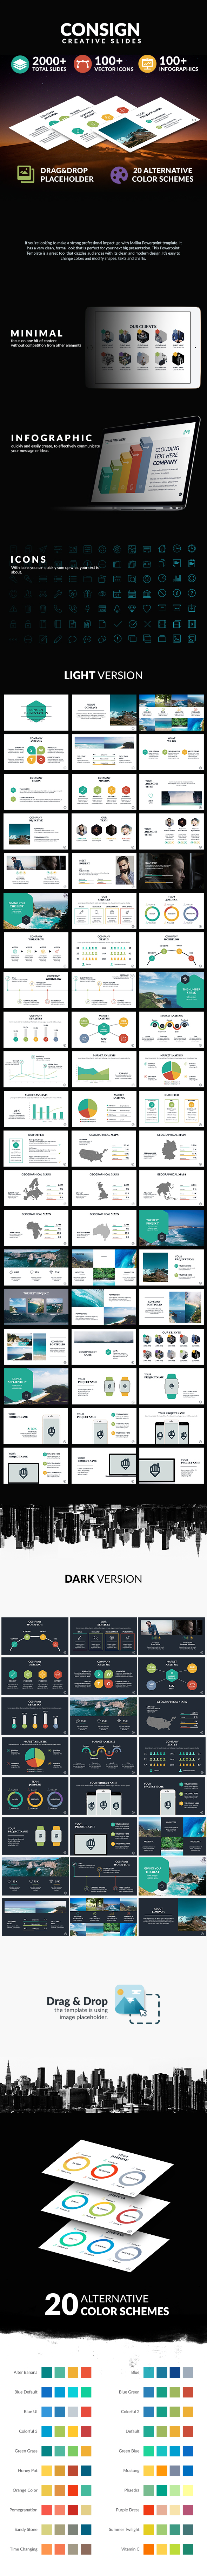 Consign Powerpoint (PowerPoint Templates)